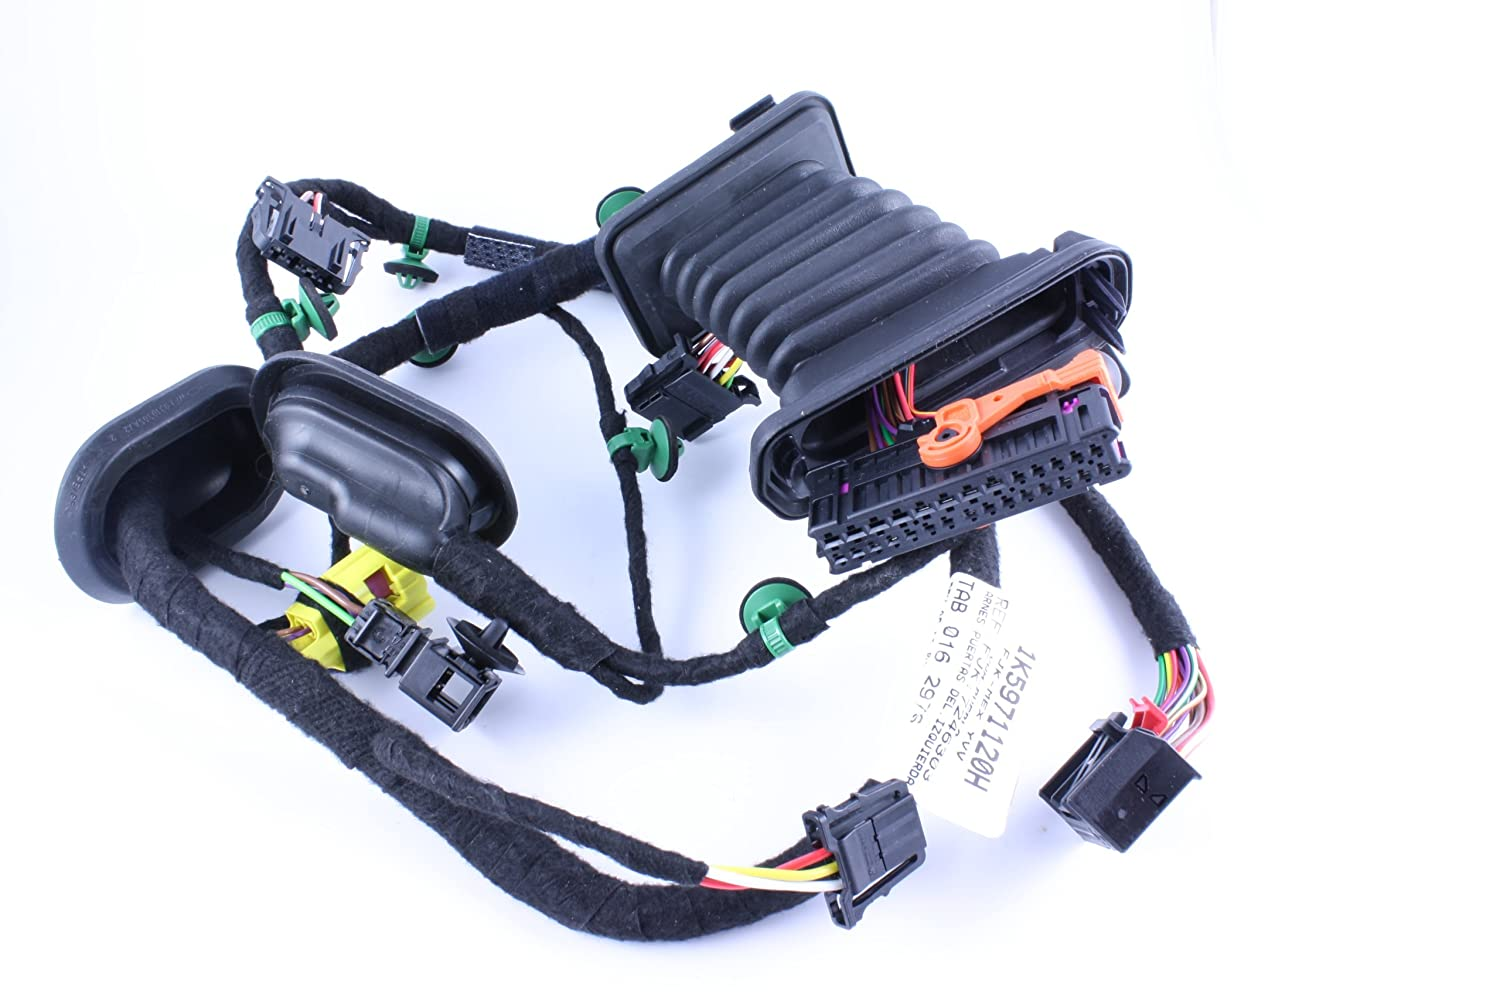 81nbhs5WbzL._SL1500_ amazon com genuine volkswagen drivers side door harness 1k5 971 2006 vw jetta door wiring harness recall at aneh.co